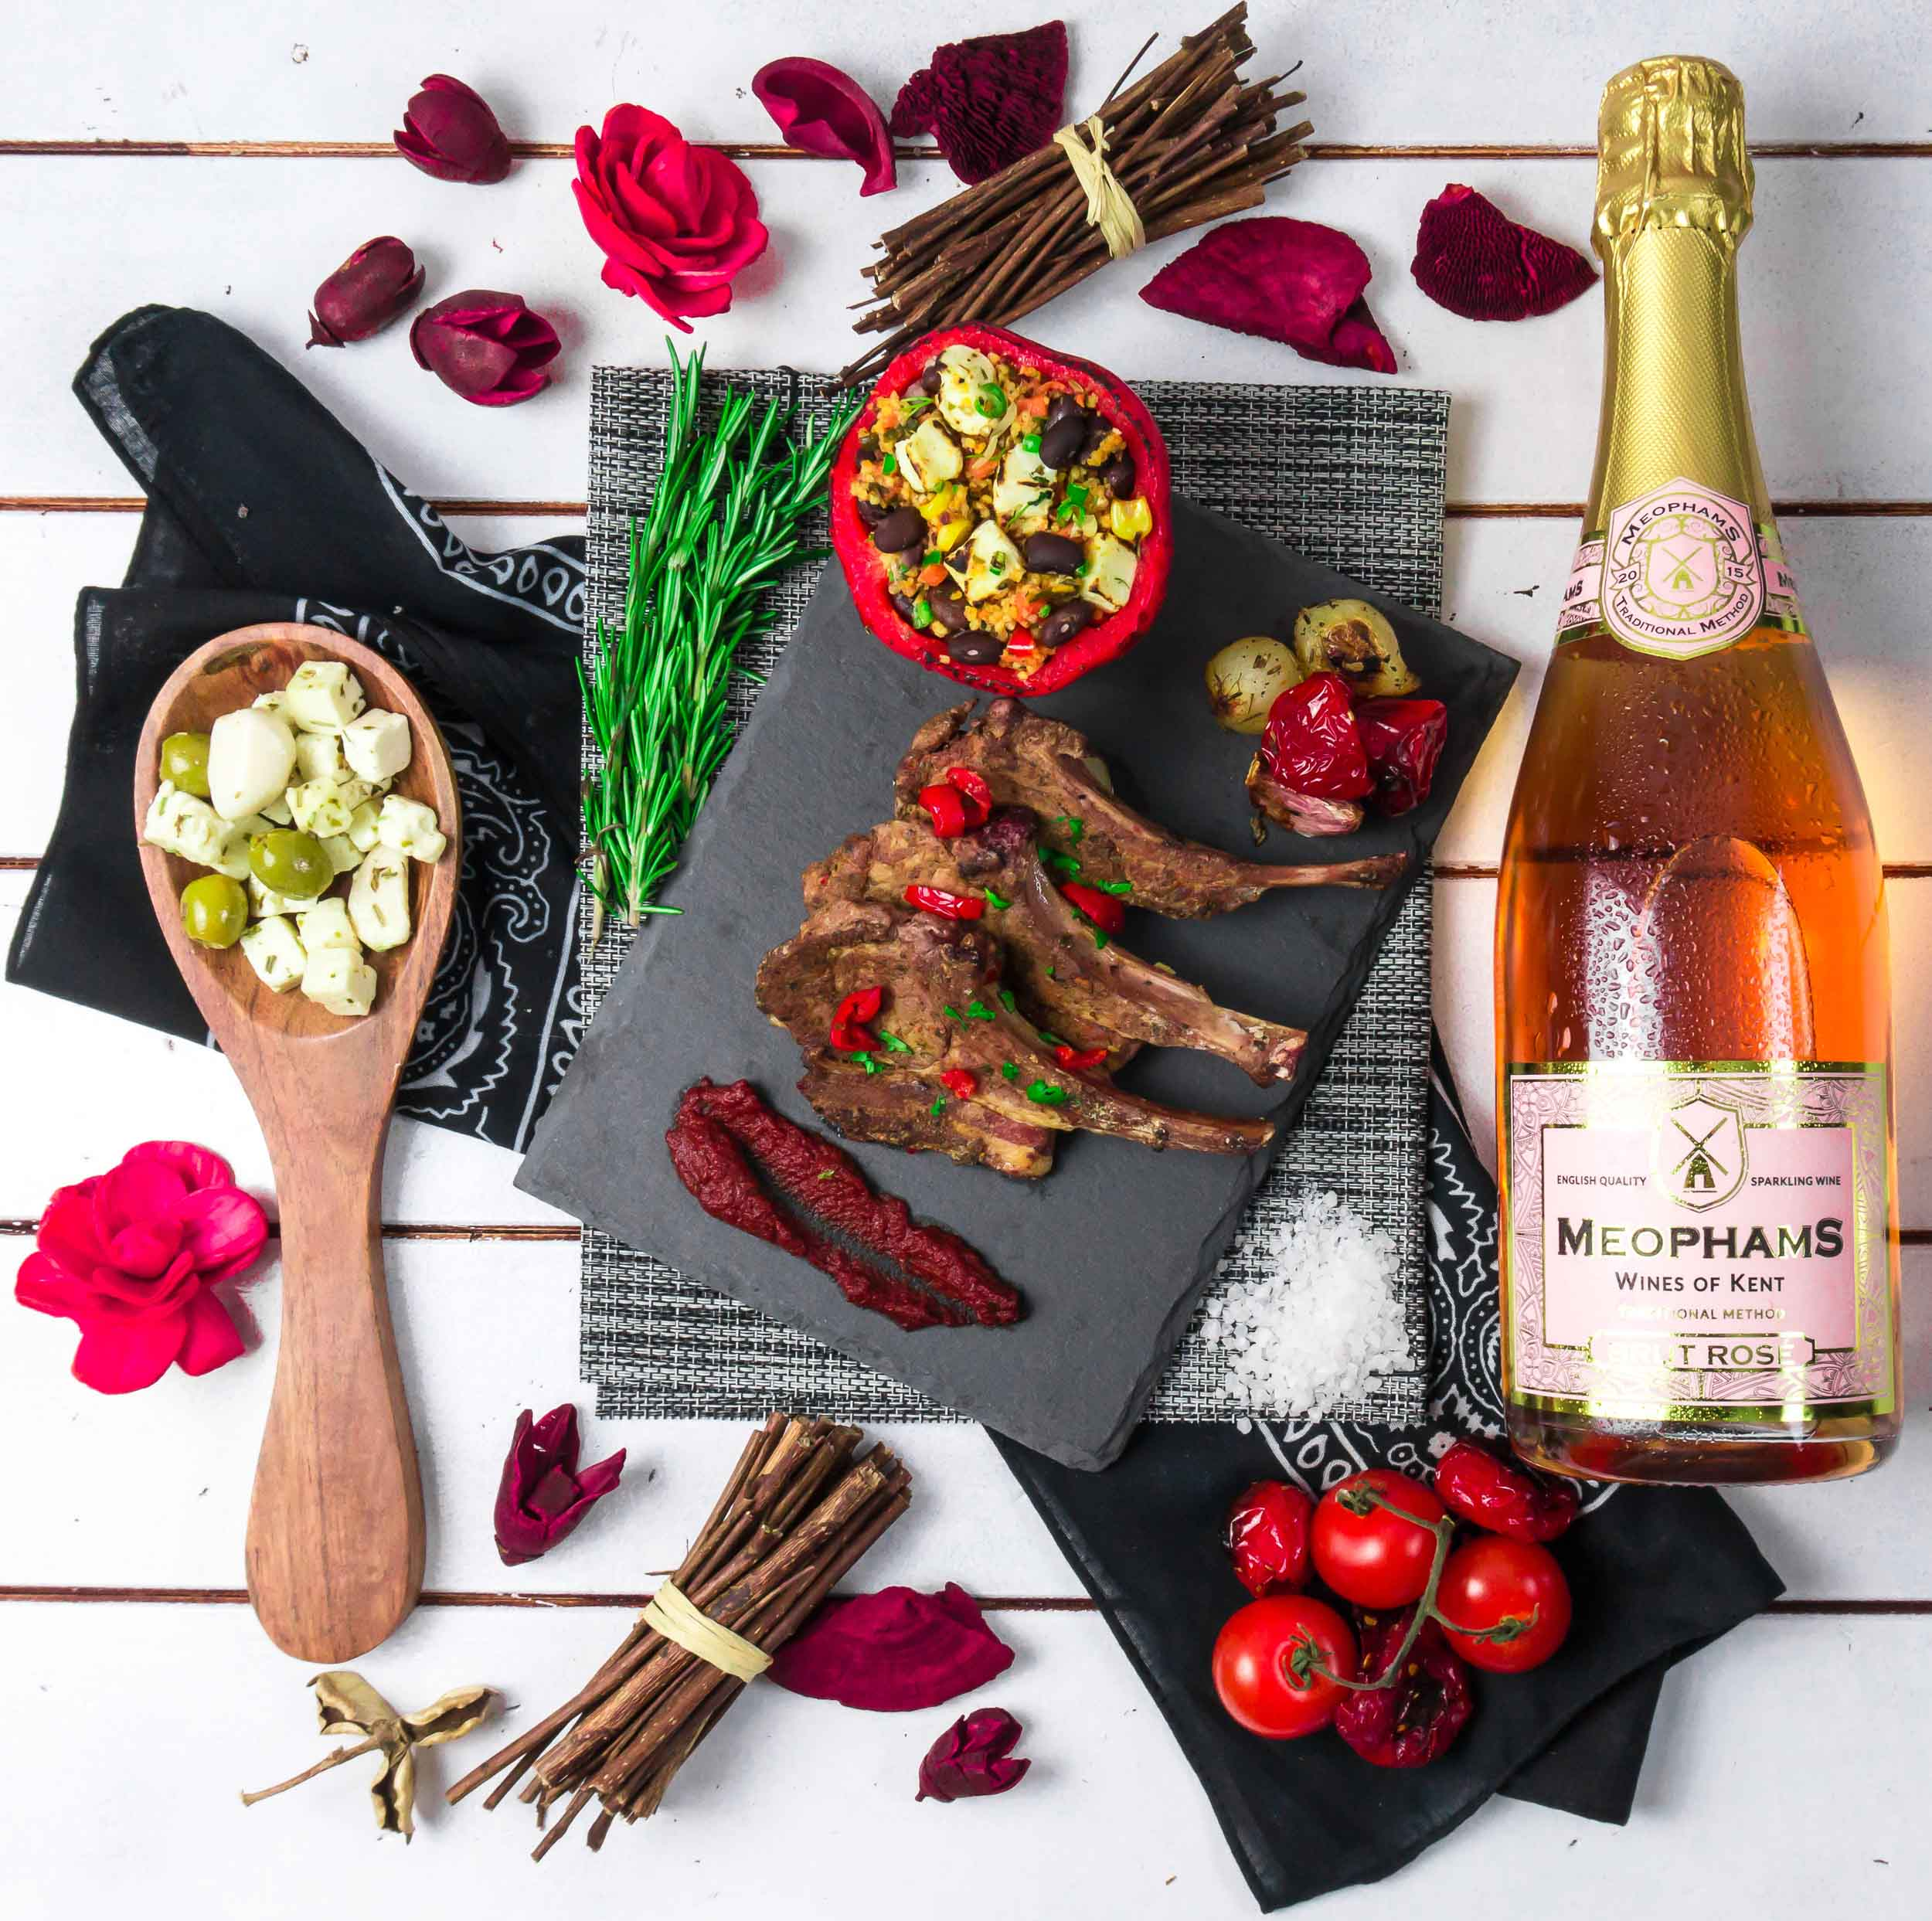 Meophams-Brut-Rose-English-Sparkling-Wine-Lamb-Cutlets-1